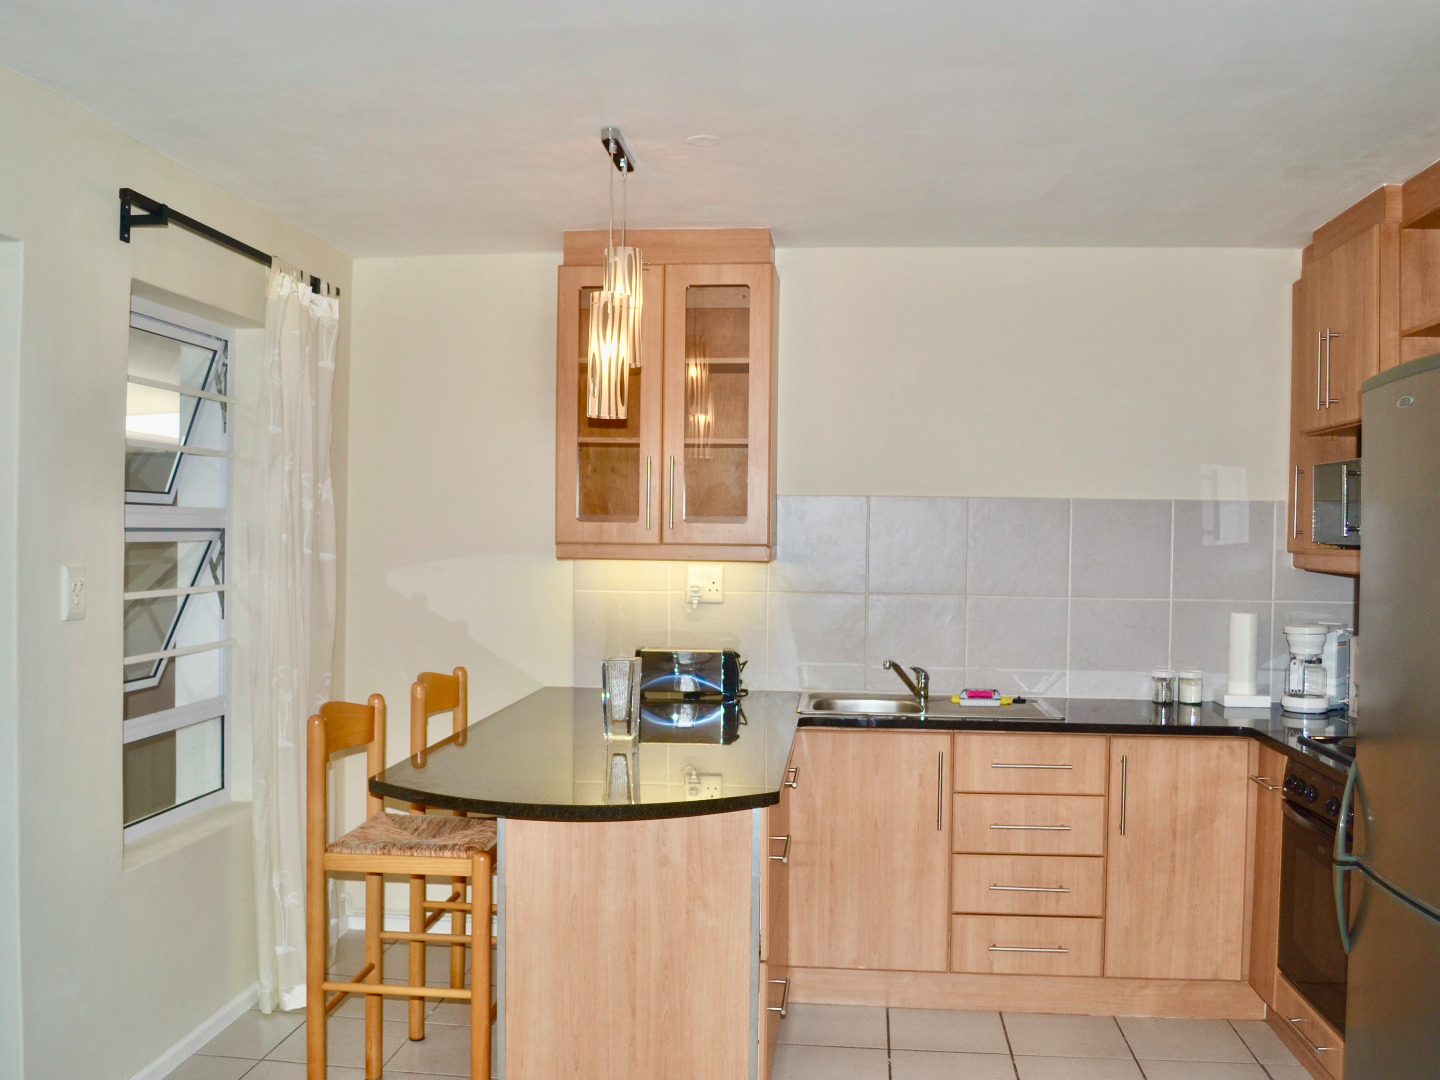 1 Bedroom Apartment / Flat For Sale in Knysna Central